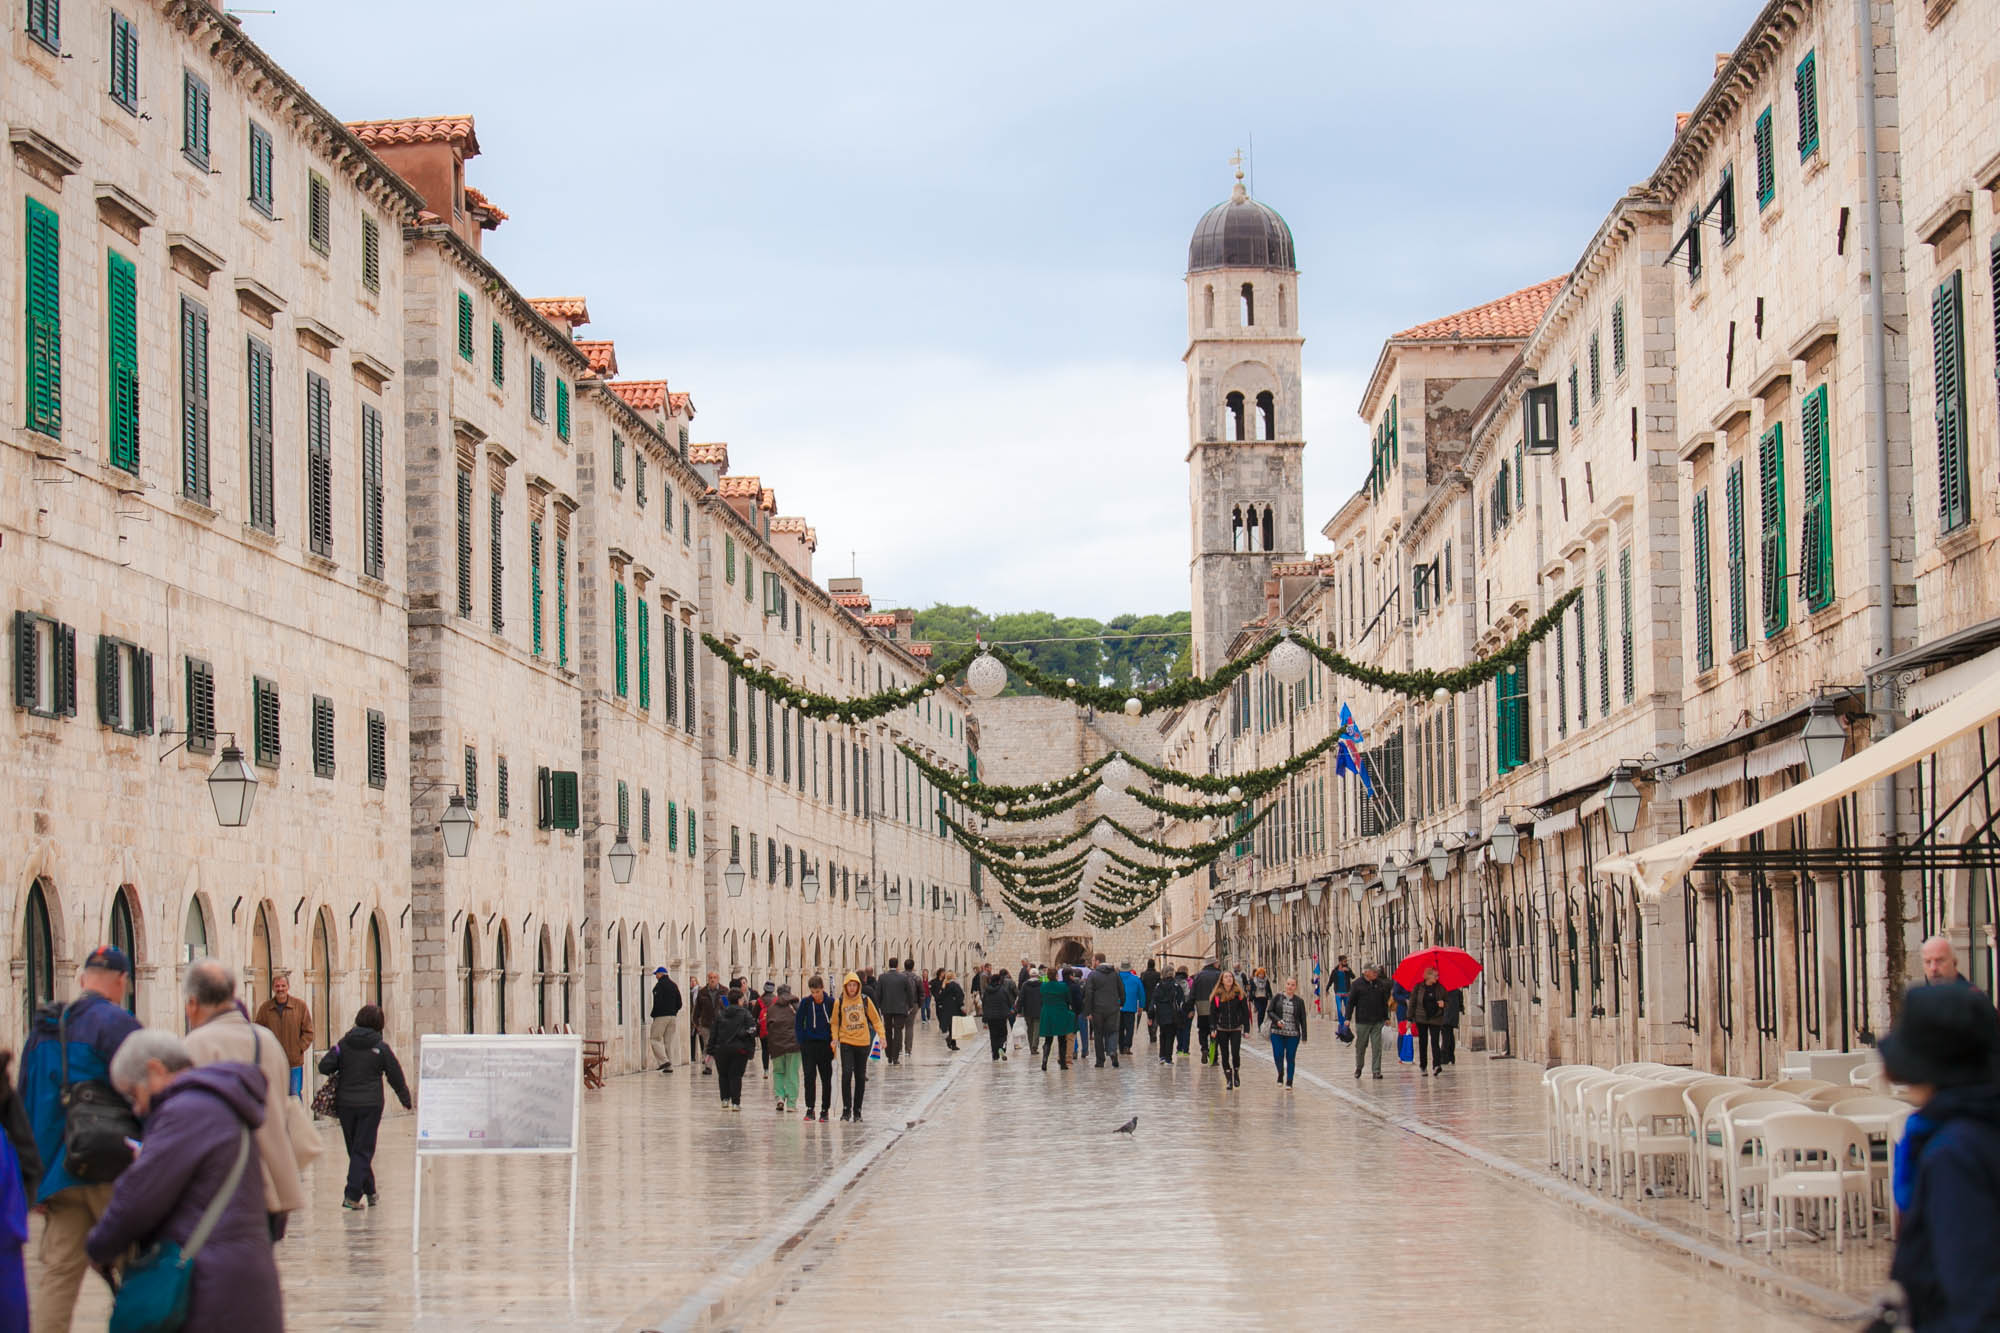 Old Dubrovnik main thoroughfare